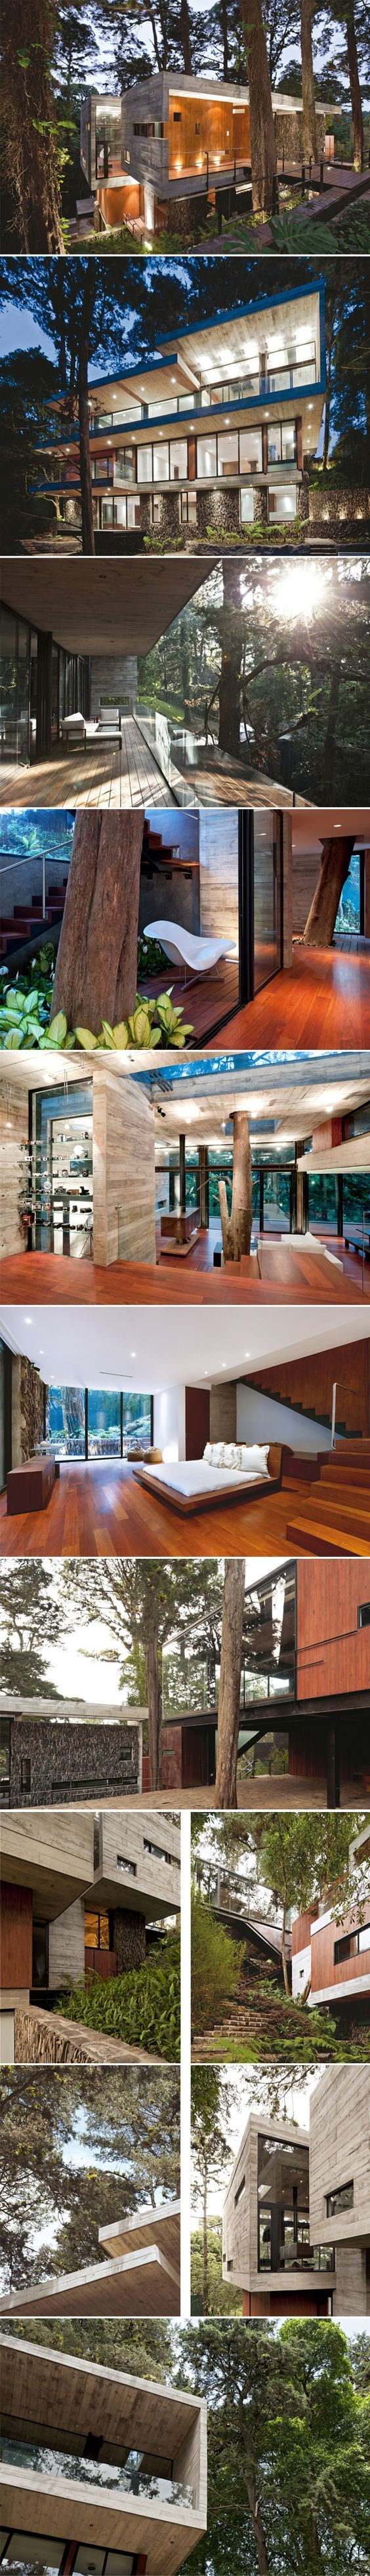 1000 id es sur le th me naturel synonyme sur pinterest for Synonyme architecture